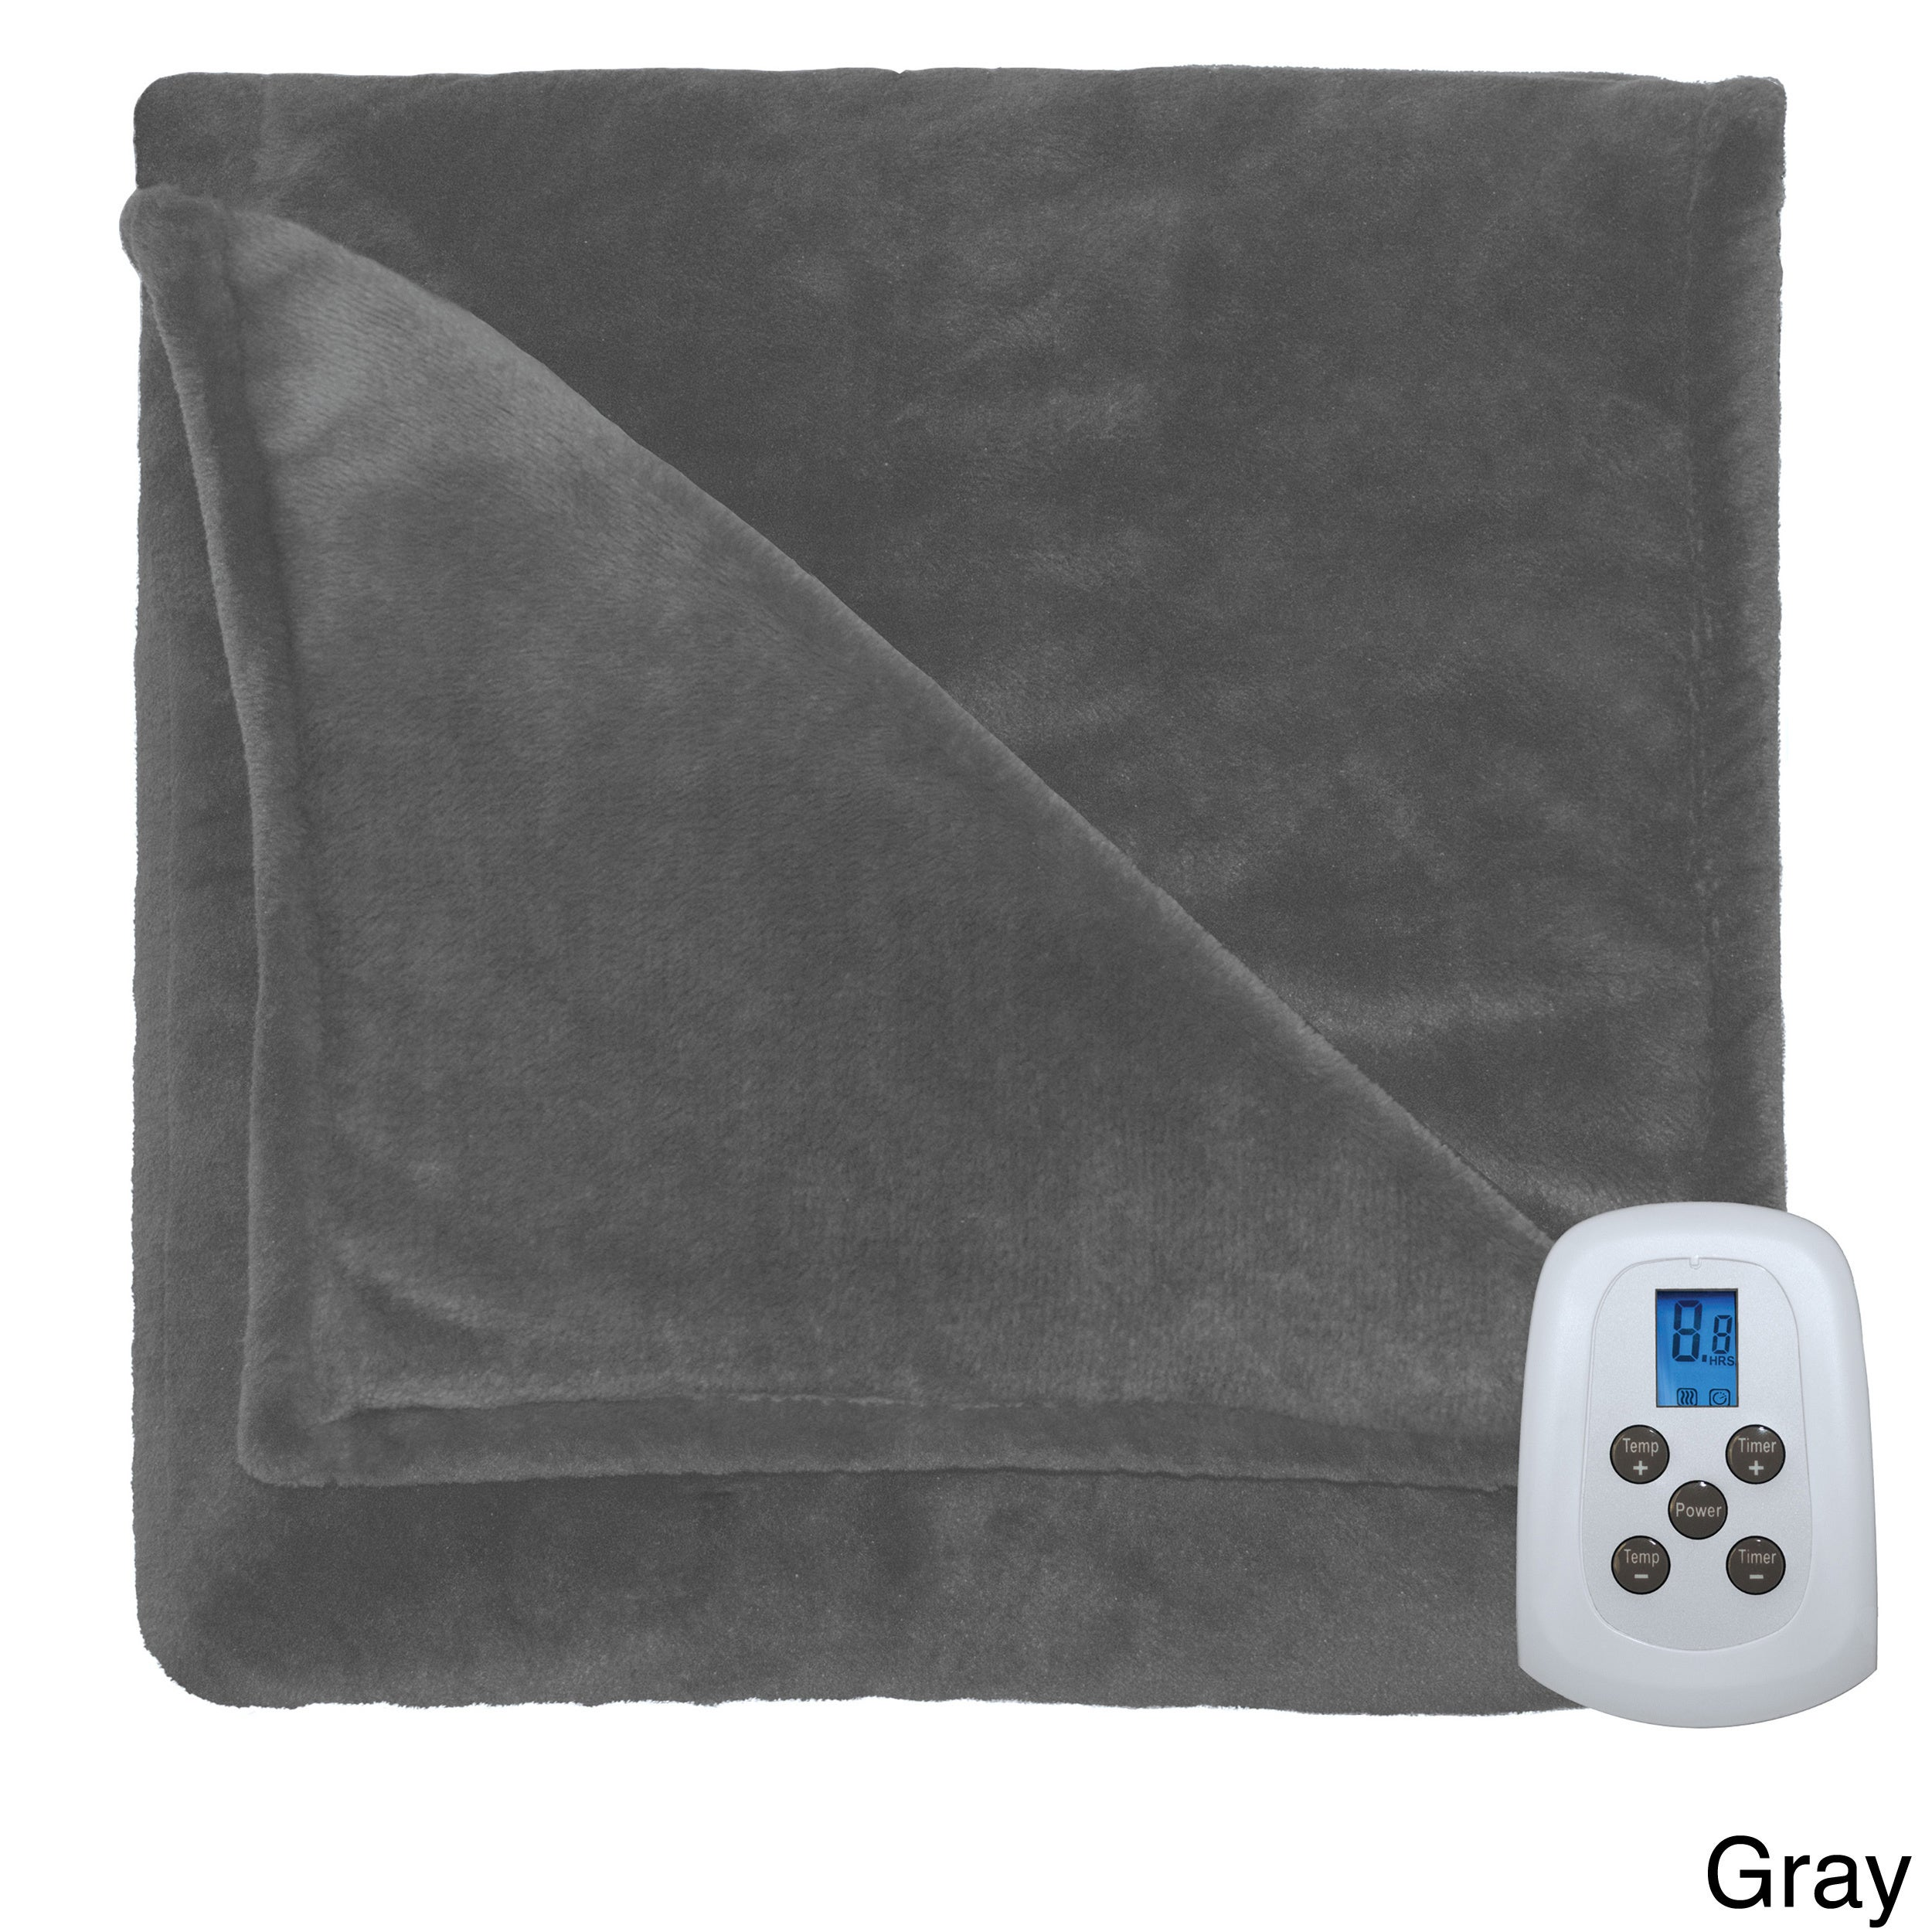 Serta Silky Plush Heated Electric Warming Blanket with a ...